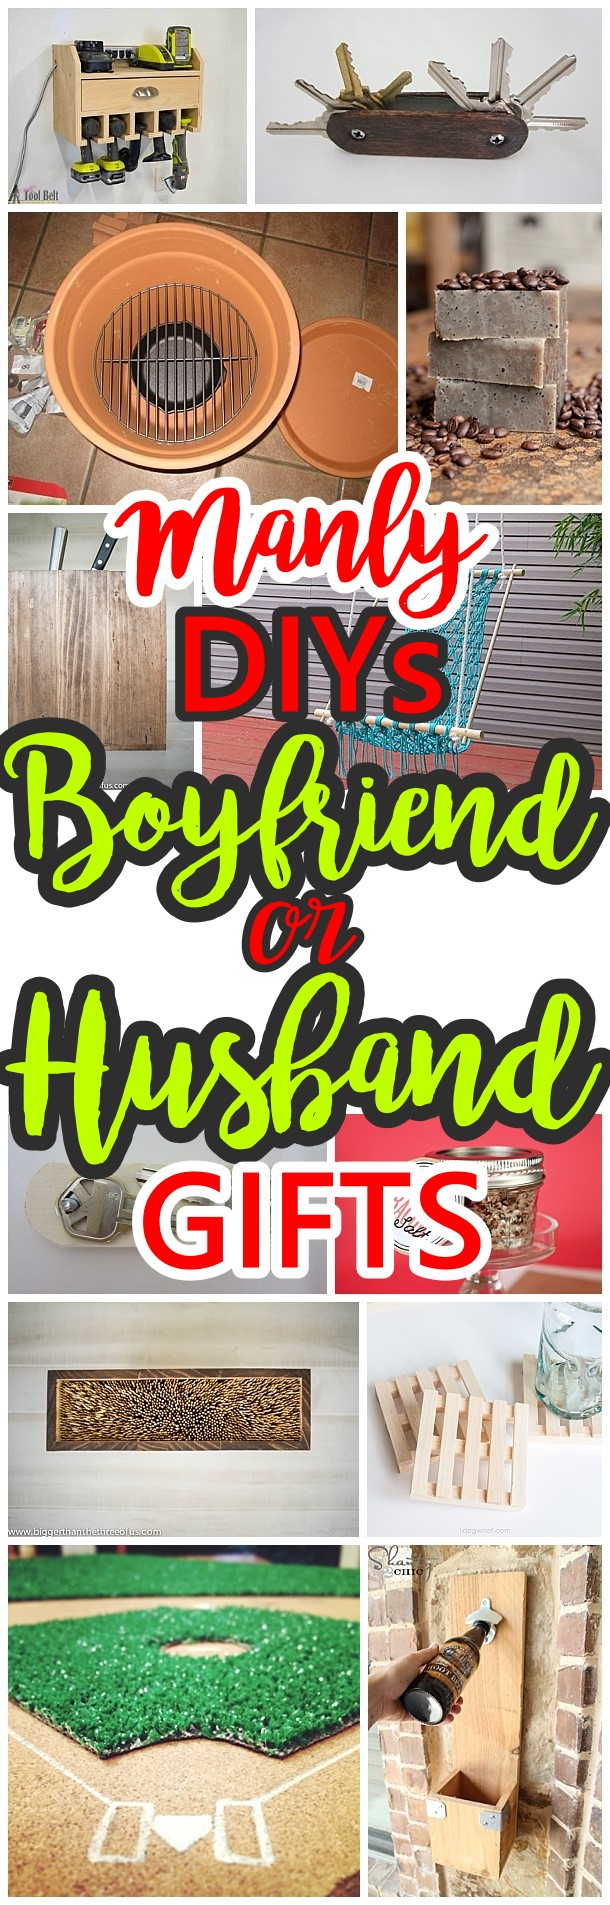 Manly do it yourself boyfriend and husband gift ideas masculine do it yourself manly gift ideas for boyfriends husbands sons brothers uncles solutioingenieria Image collections